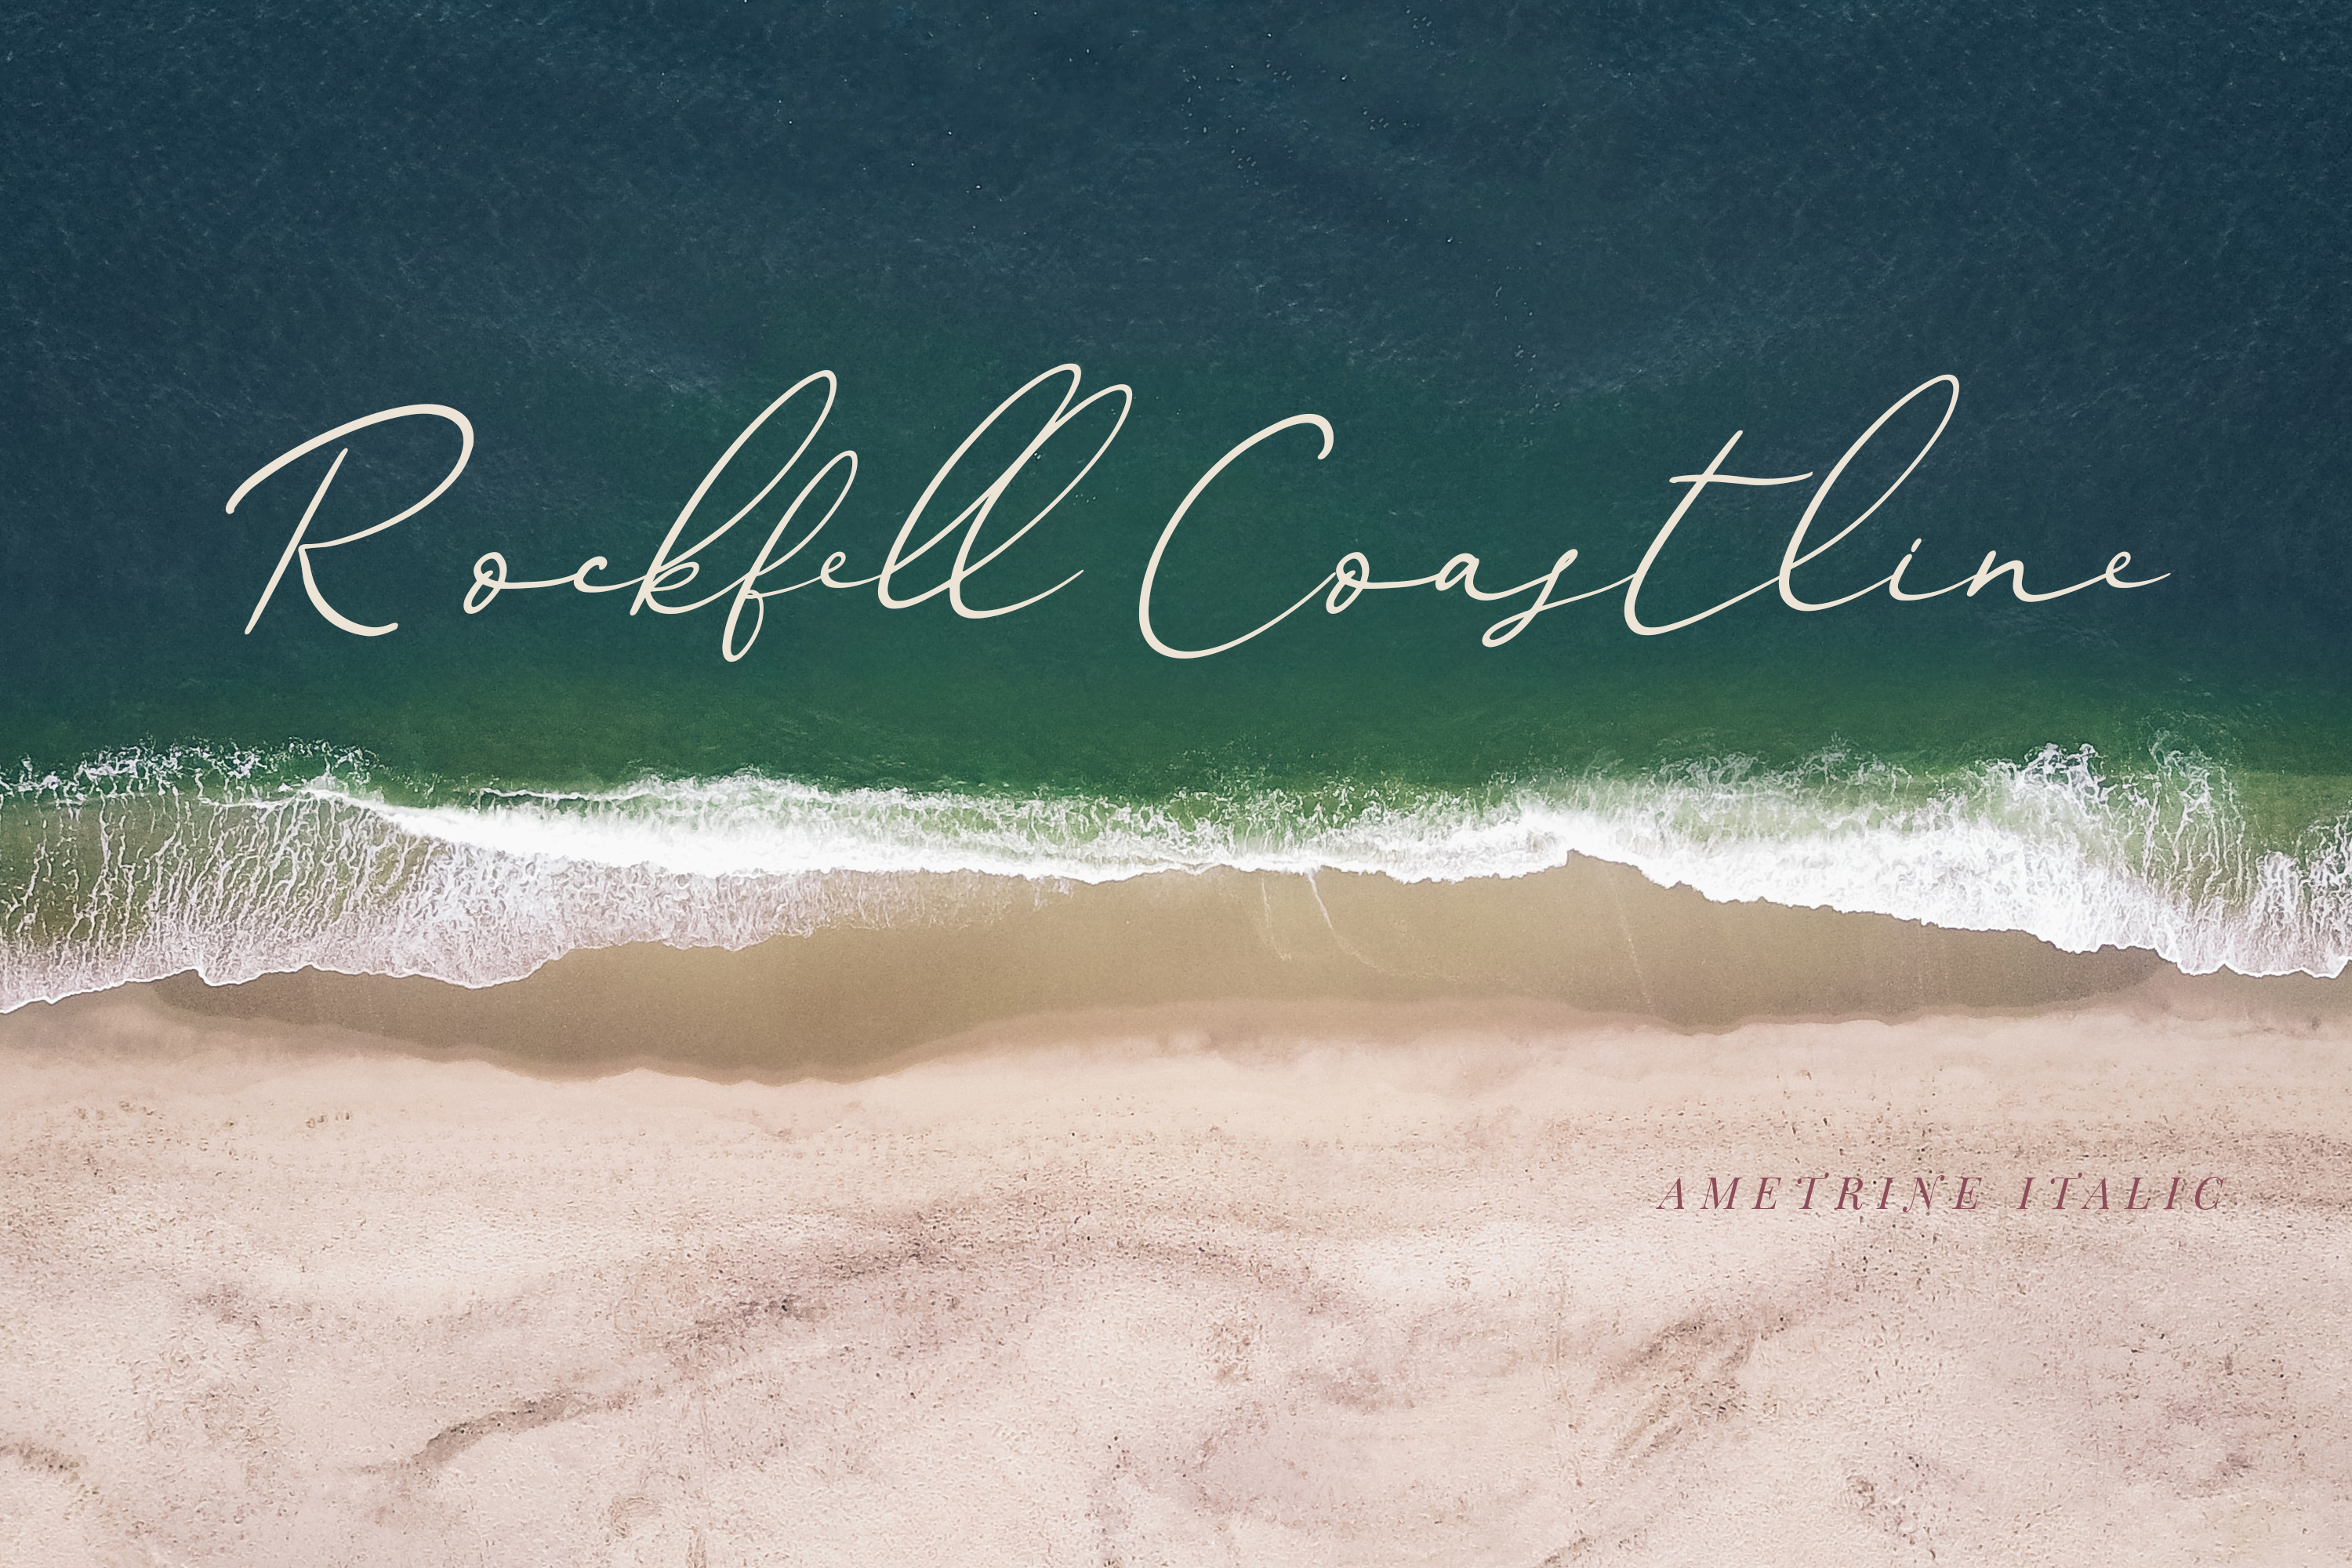 Ametrine, super-casual style font example image 11